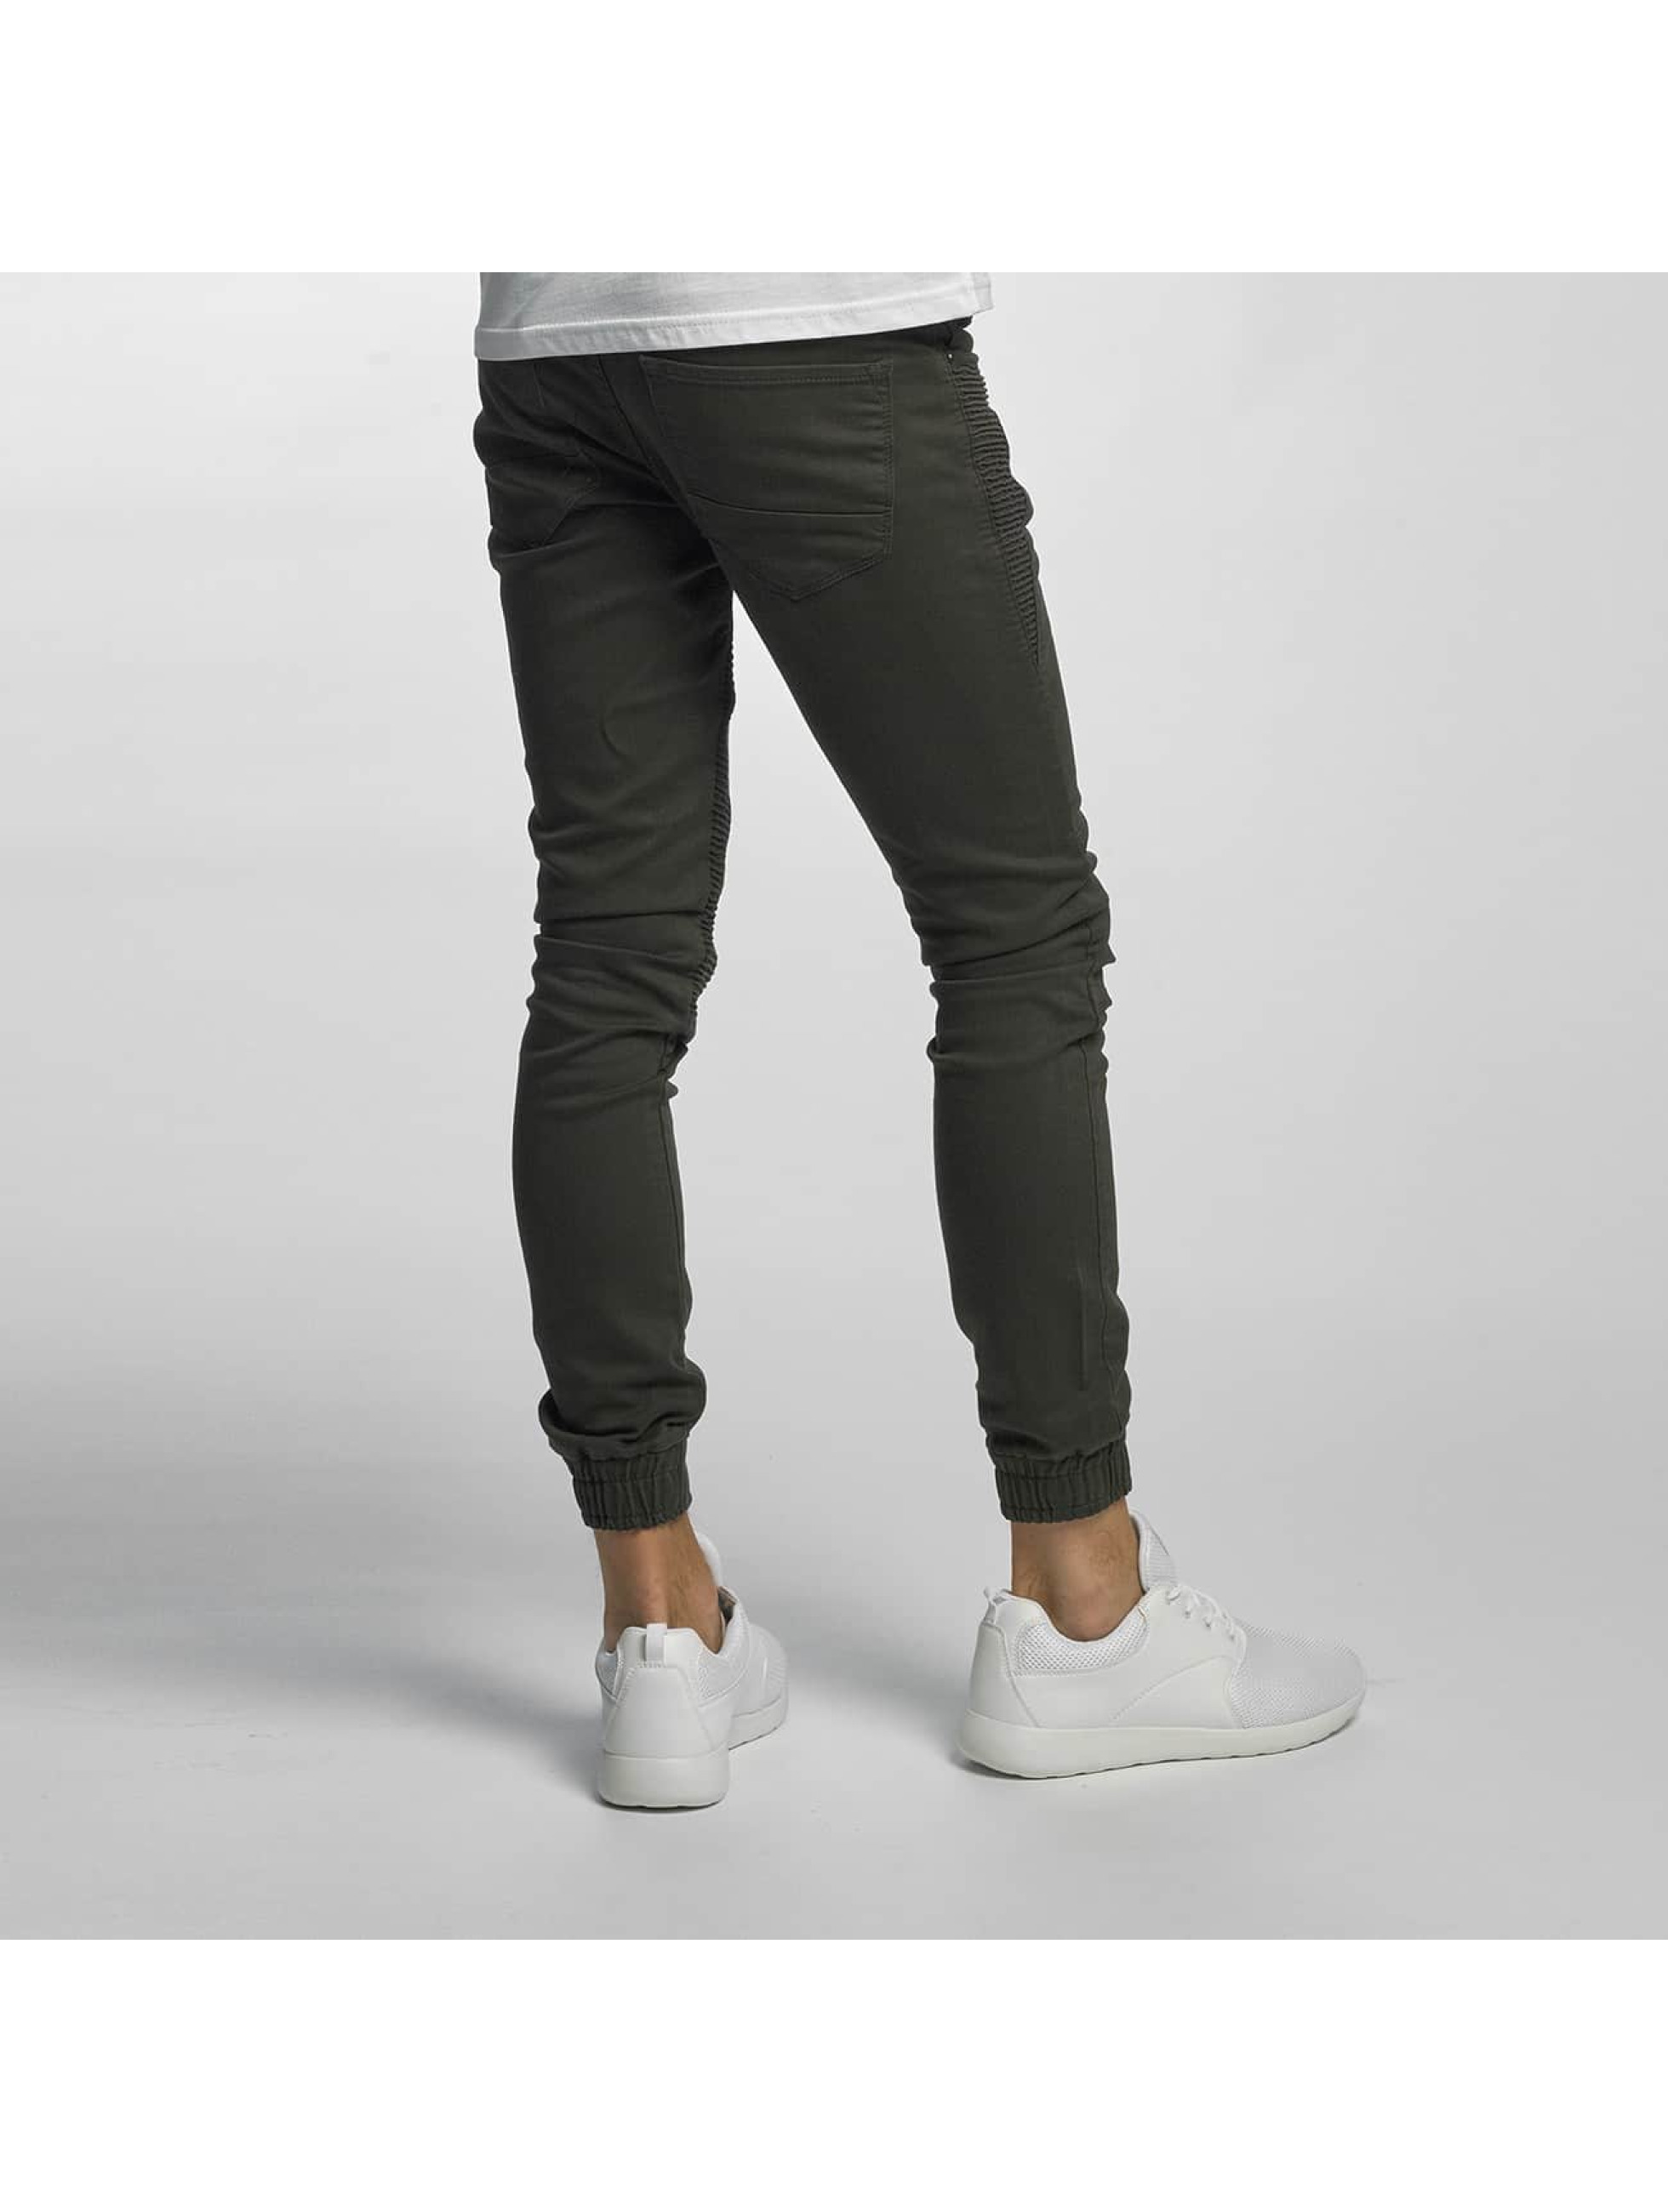 2Y Slim Fit Jeans Sheffield khaki